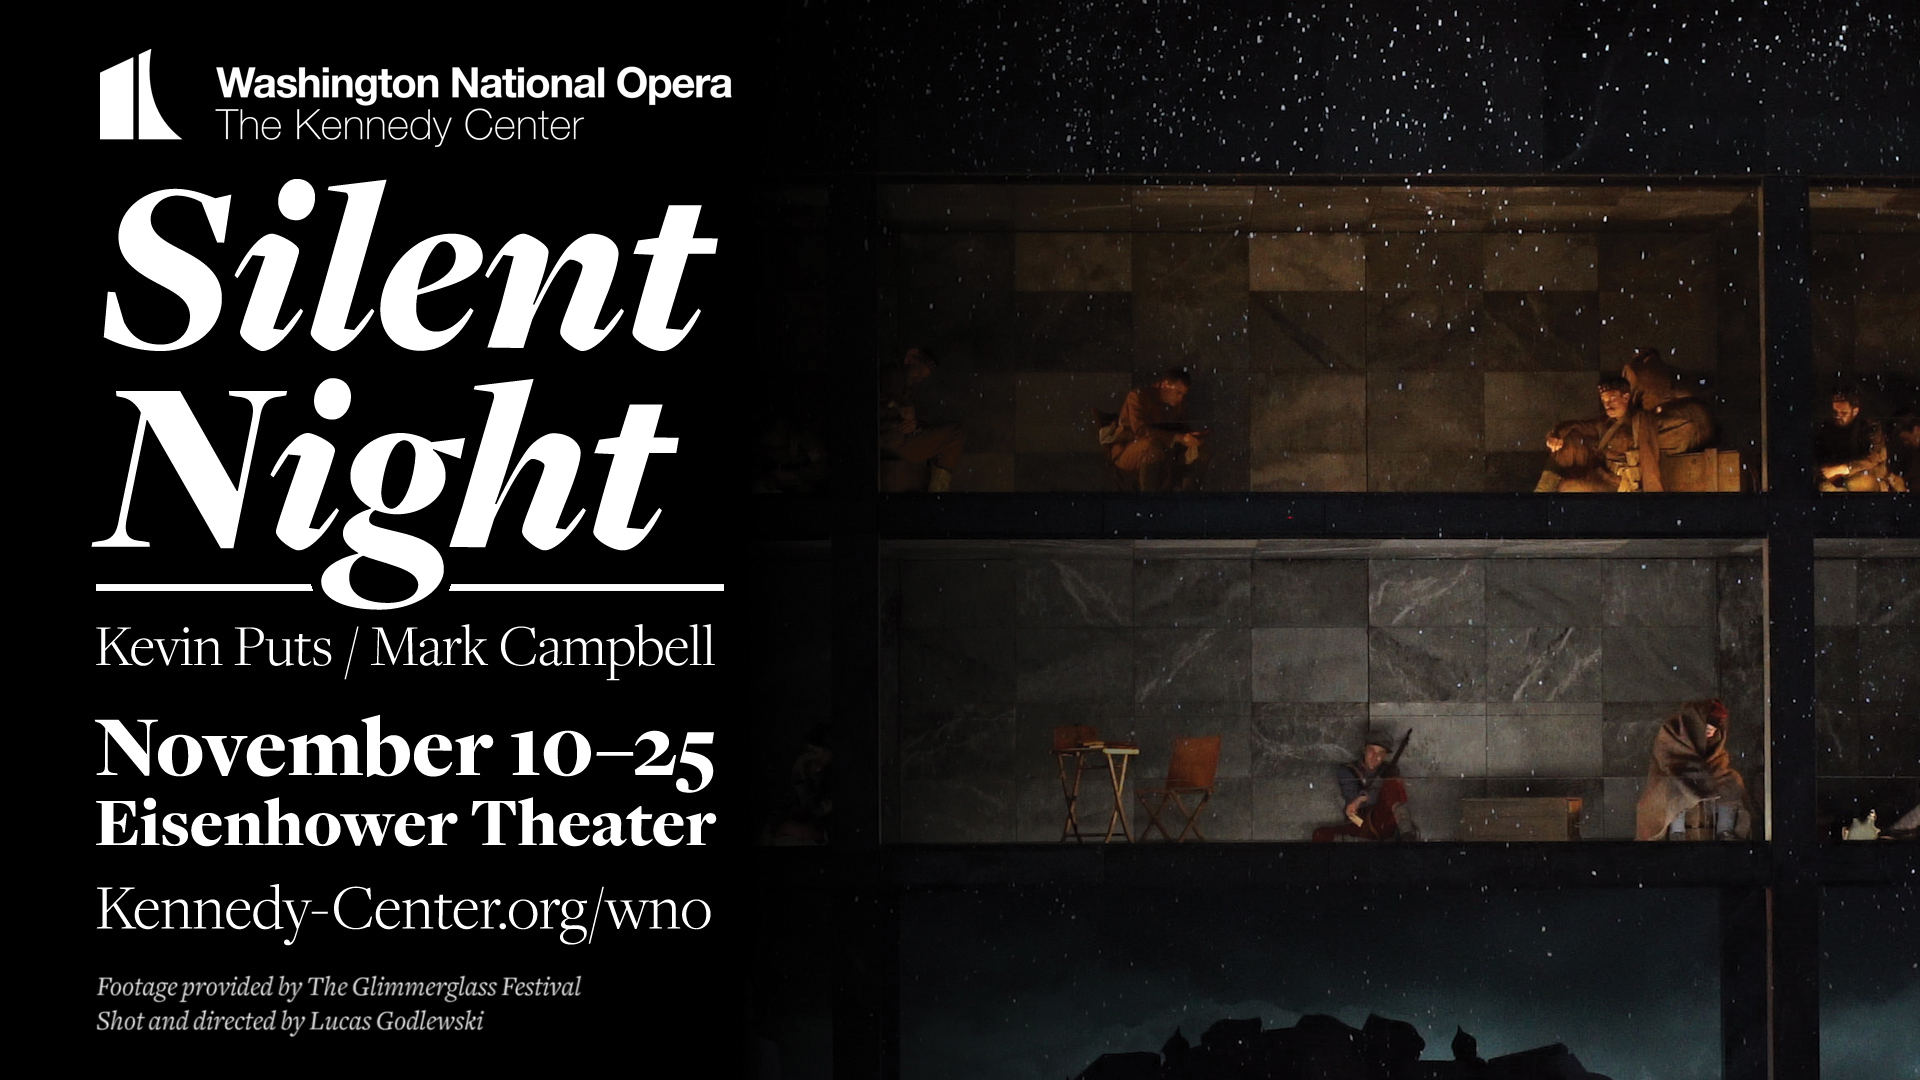 Washington National Opera: Silent Night | The Kennedy Center